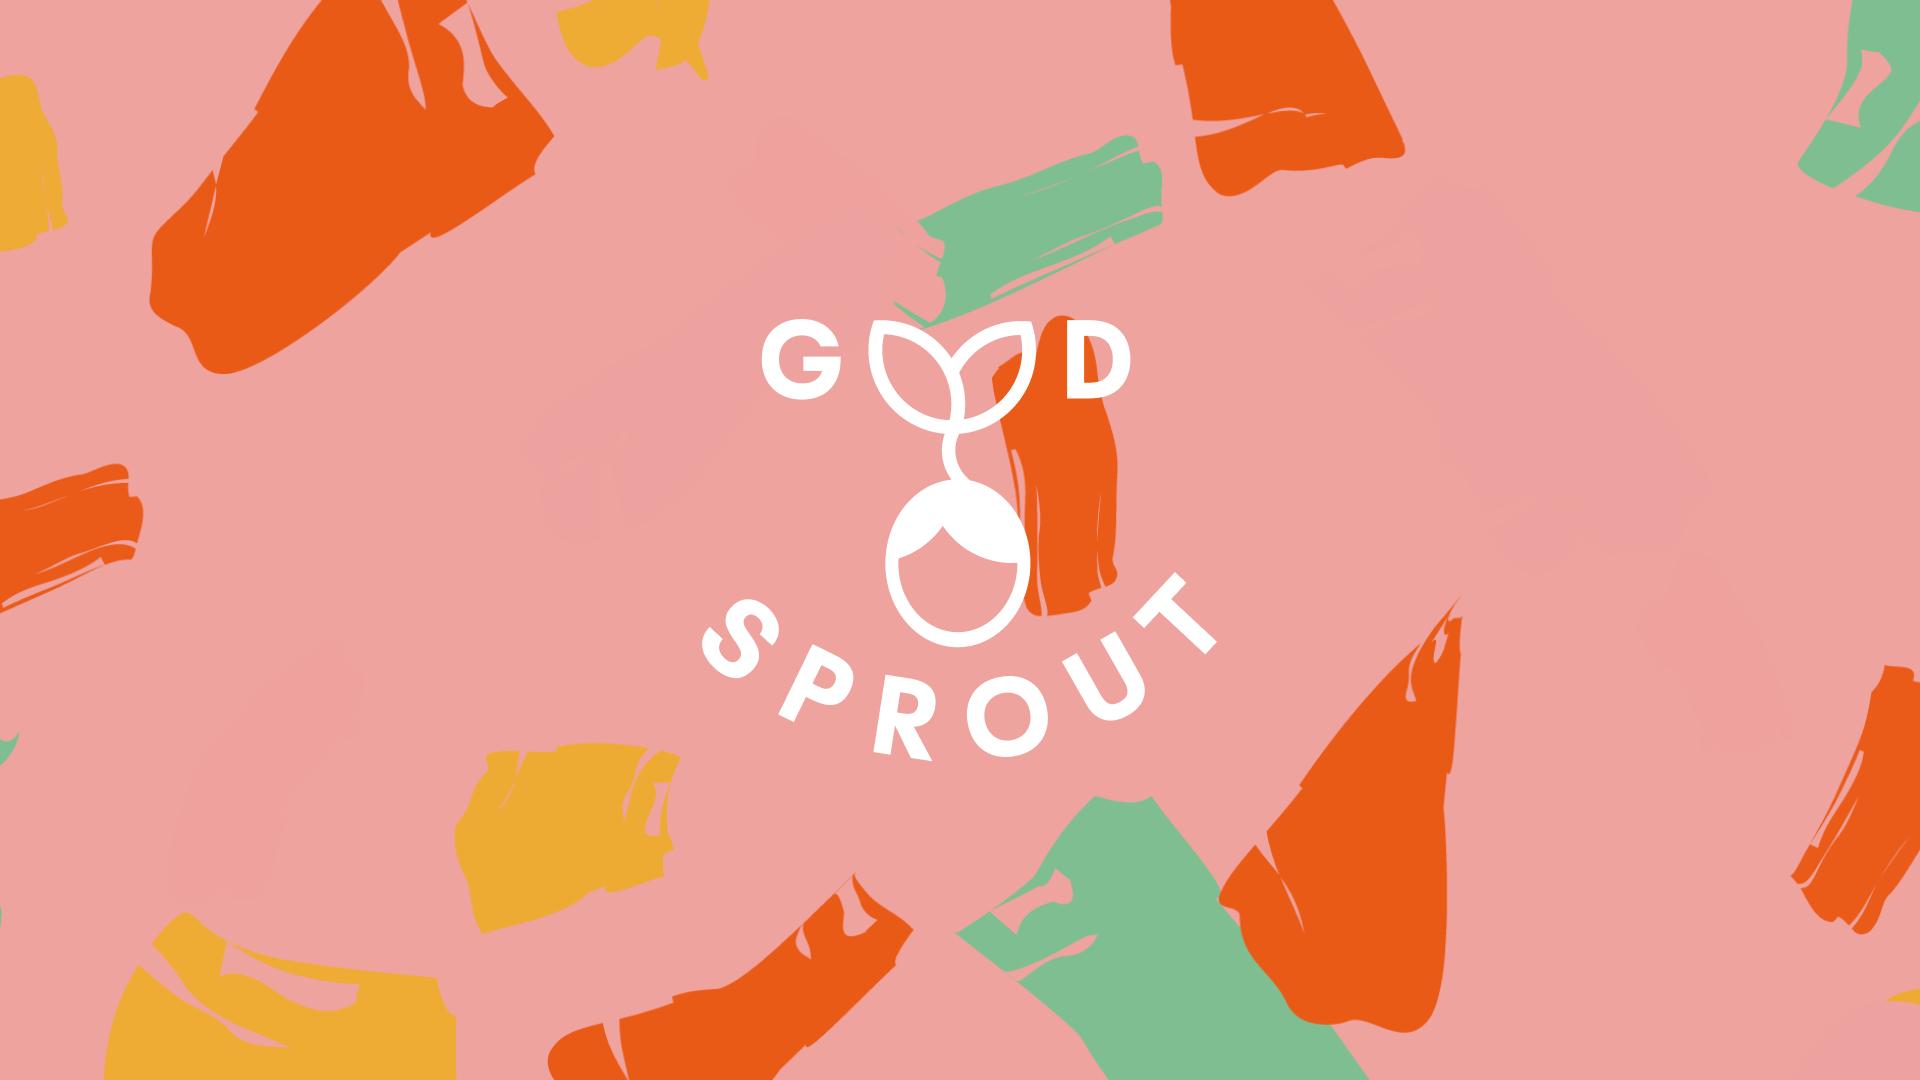 Projekt Good Sprout 3